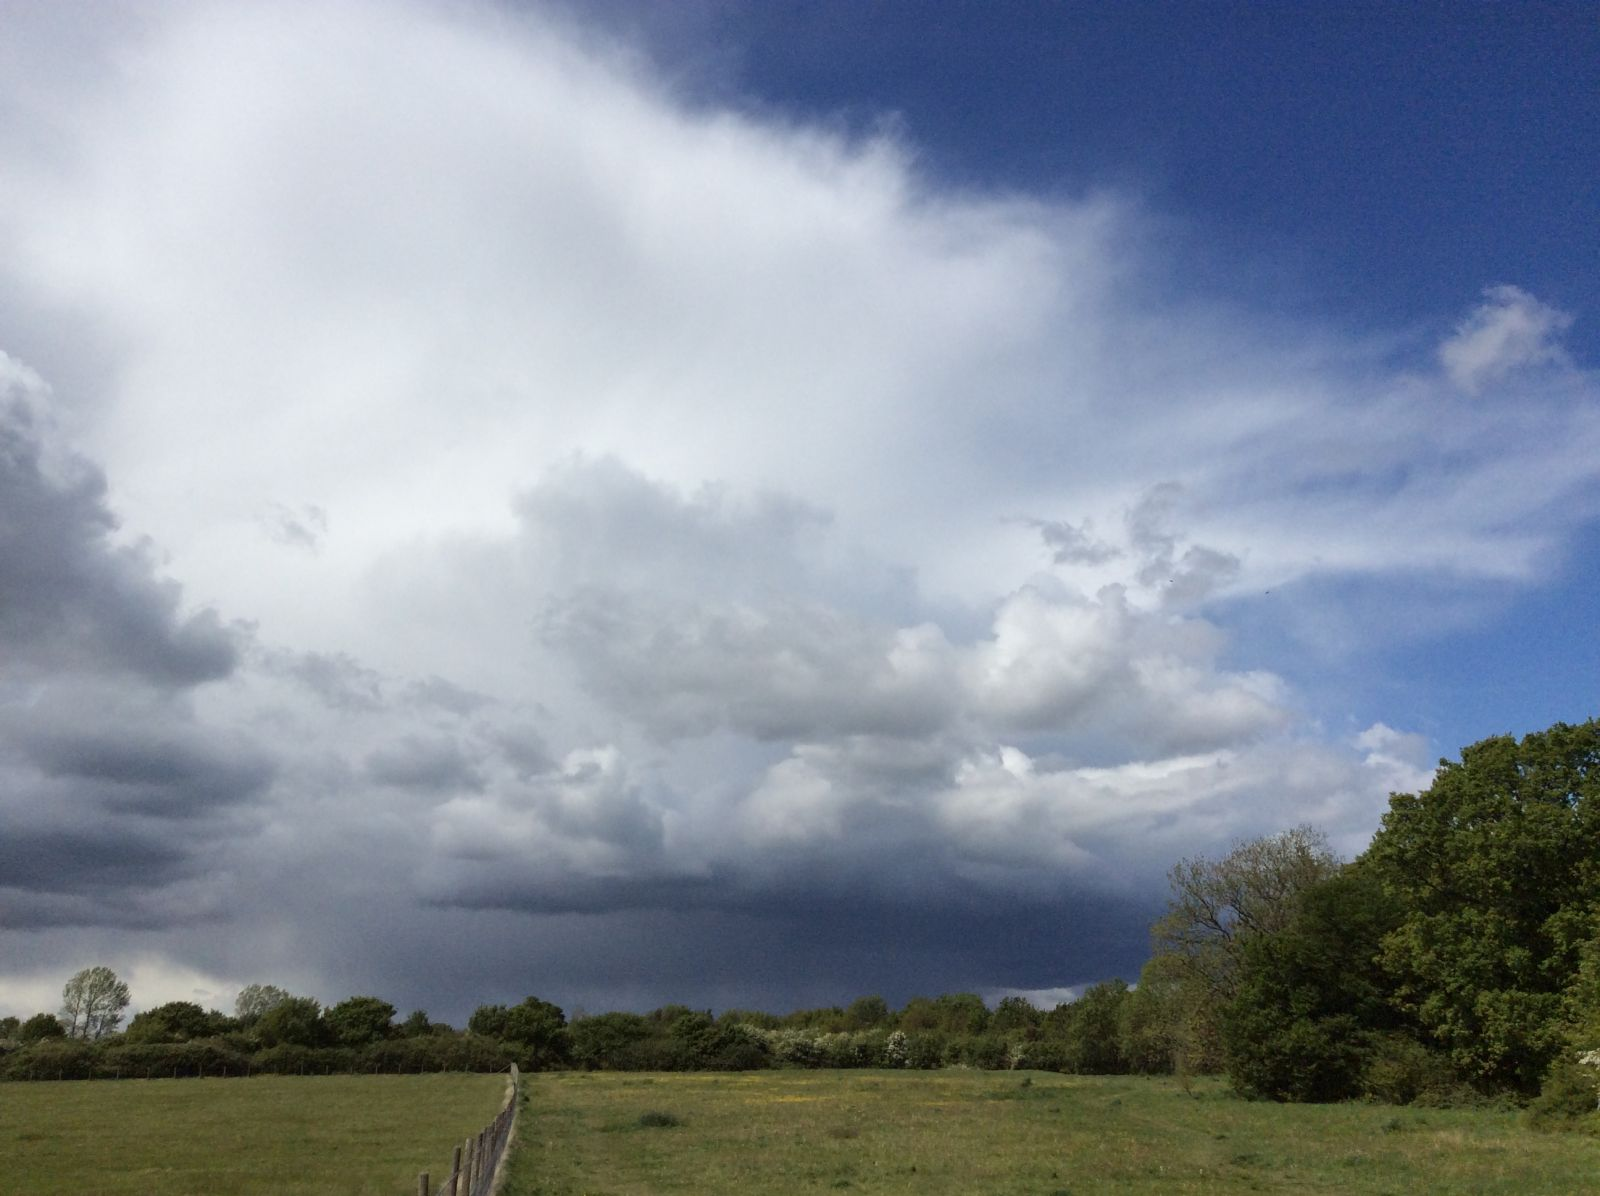 small storm cell over in south east England